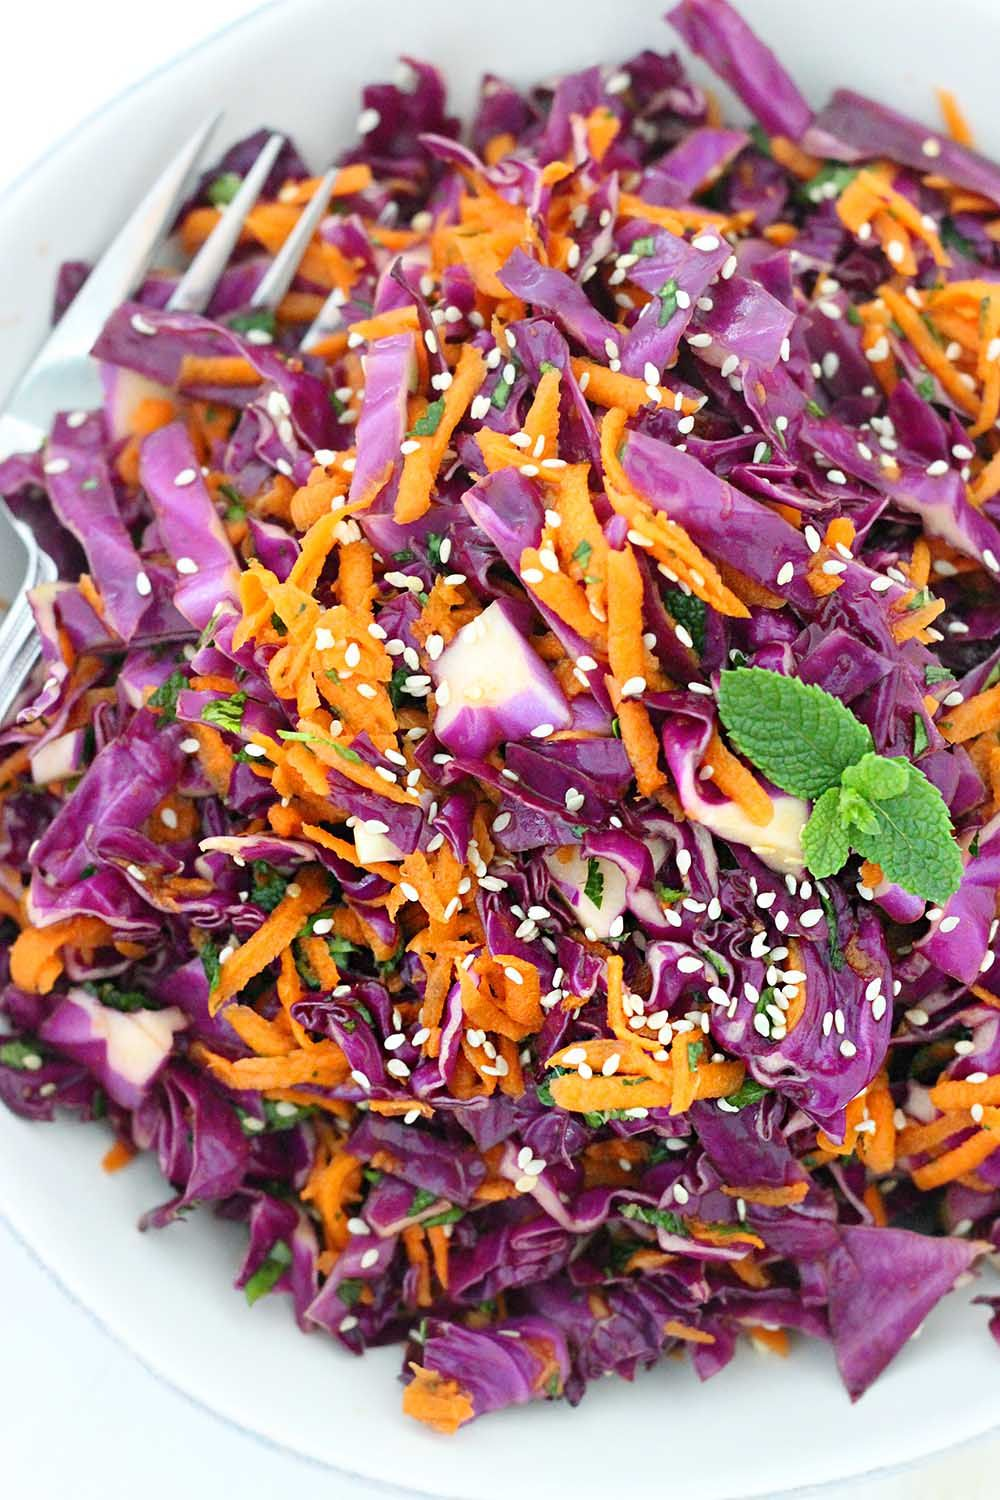 Thai Sesame Red Cabbage And Carrot Salad Recipe Carrot Salad Red Cabbage Recipes Red Cabbage Salad